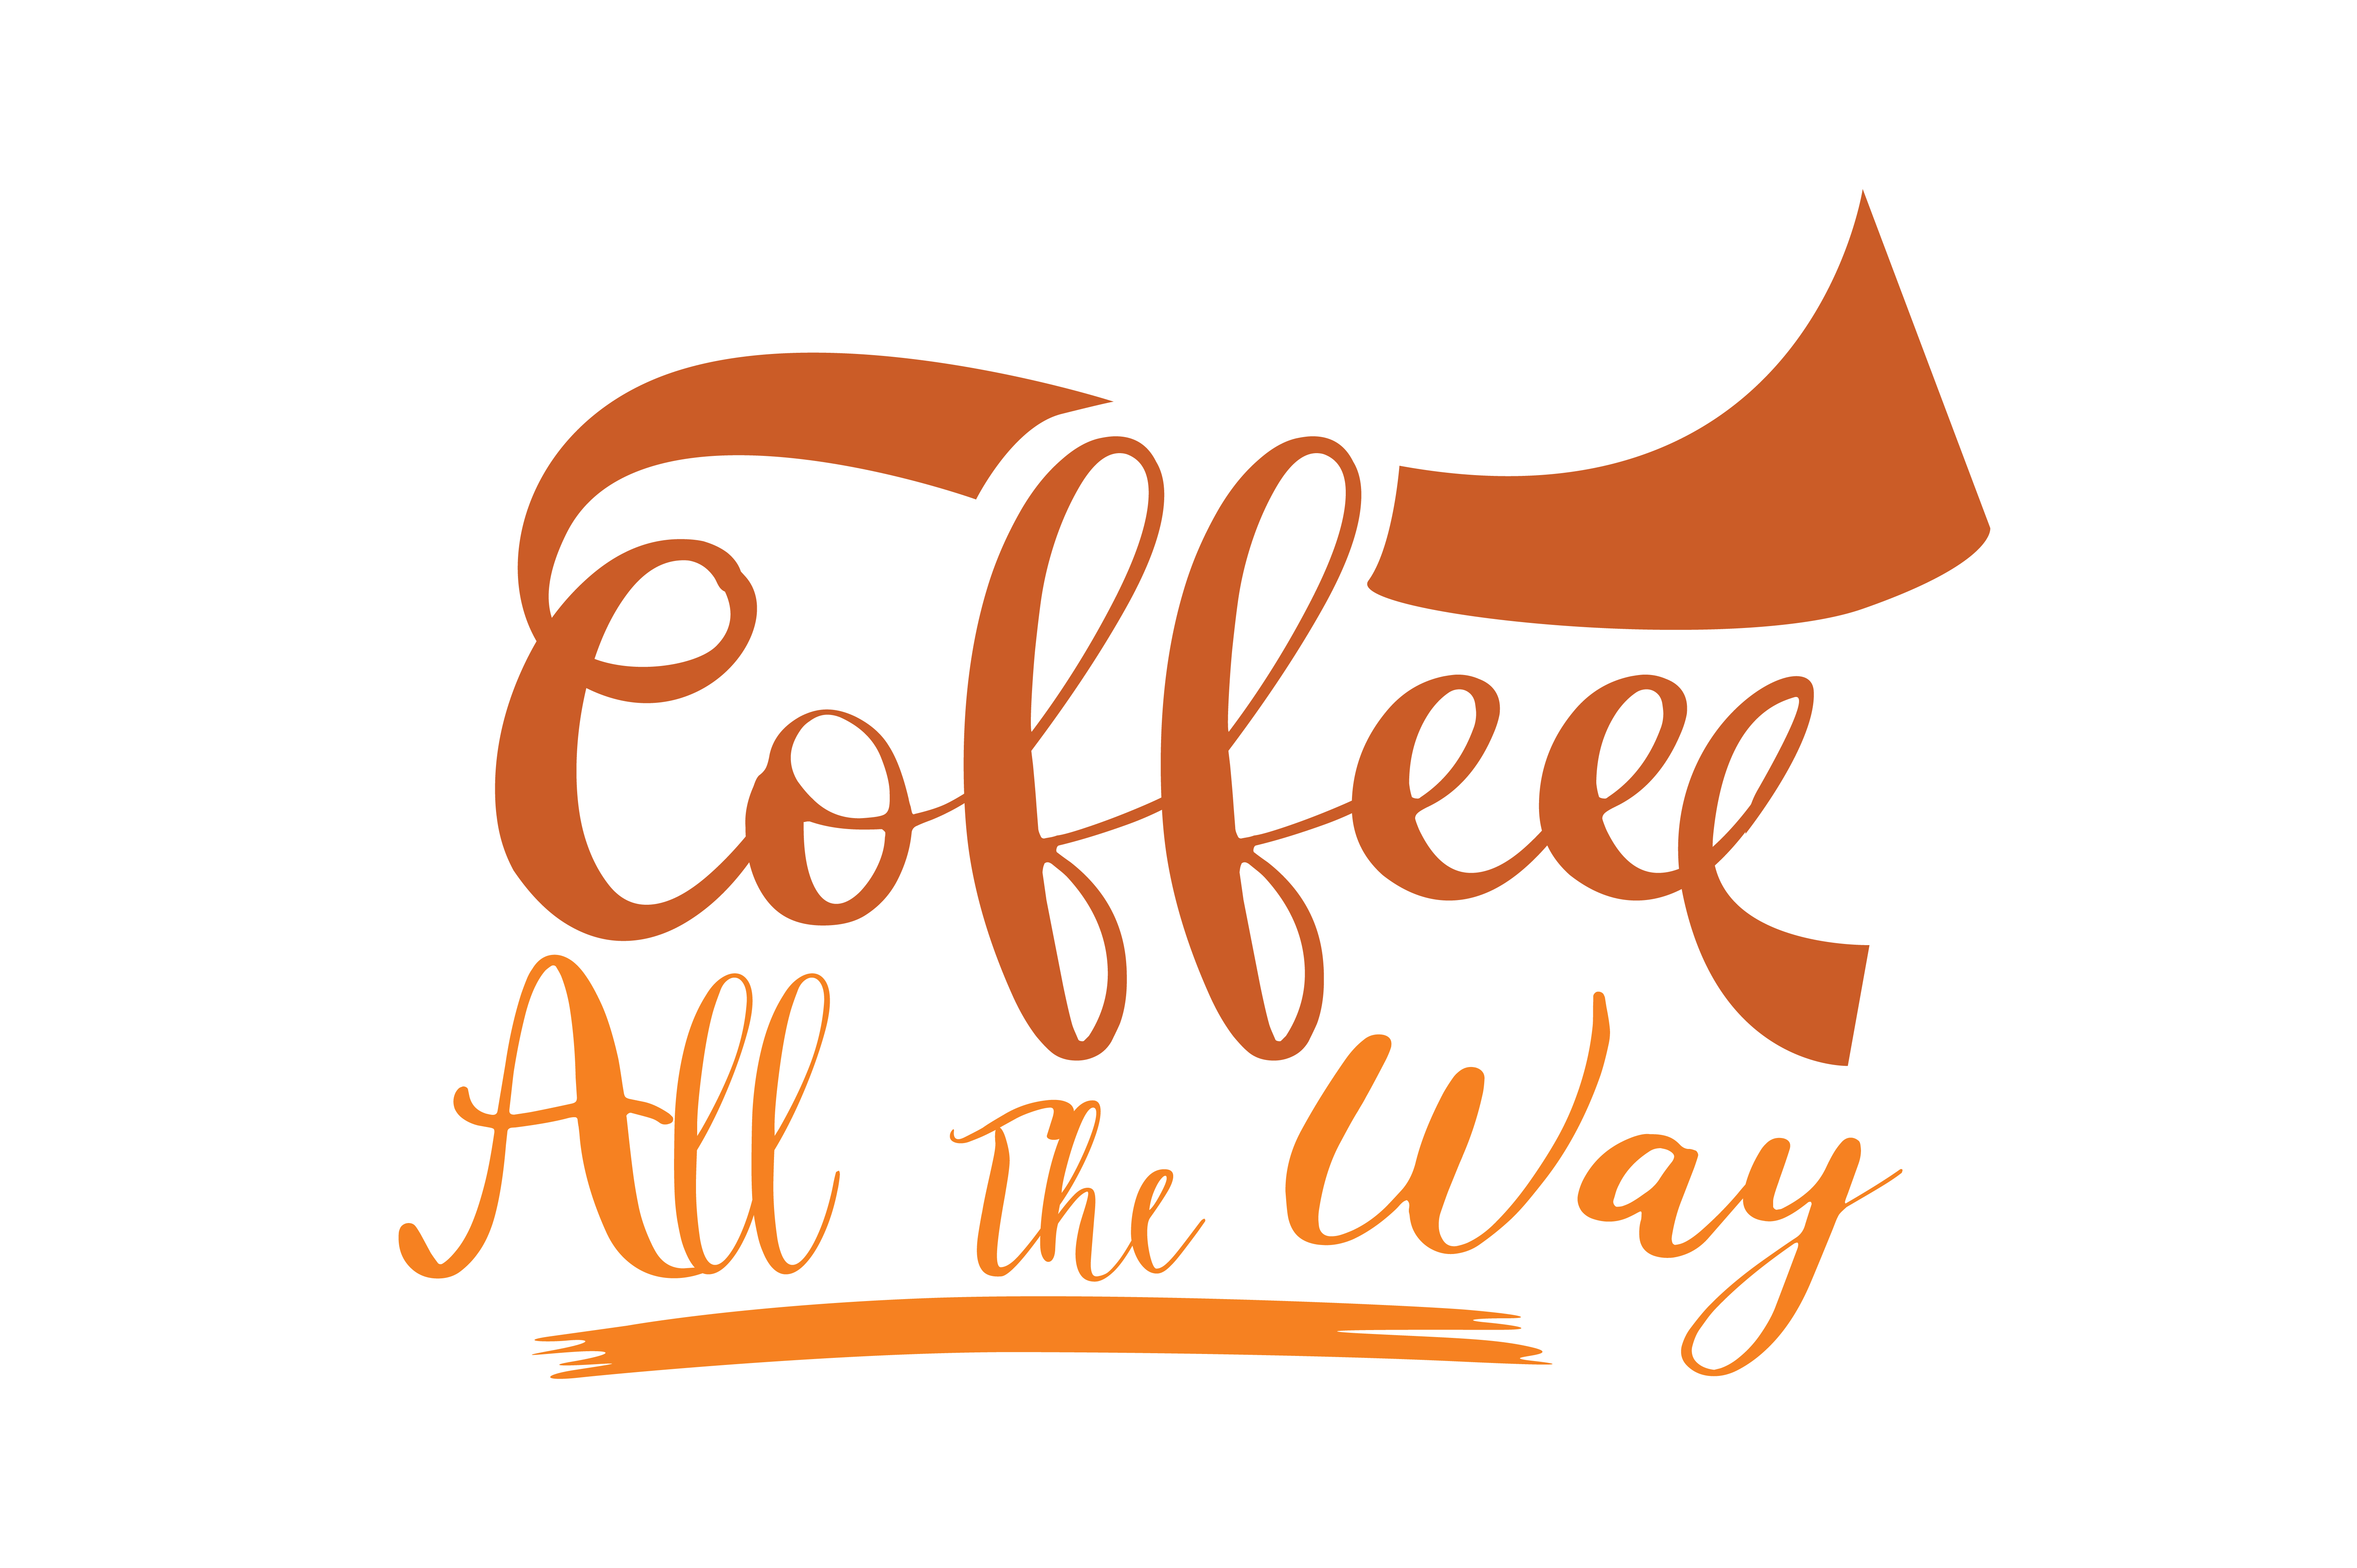 Download Free Coffee All The Way Graphic By Thelucky Creative Fabrica for Cricut Explore, Silhouette and other cutting machines.